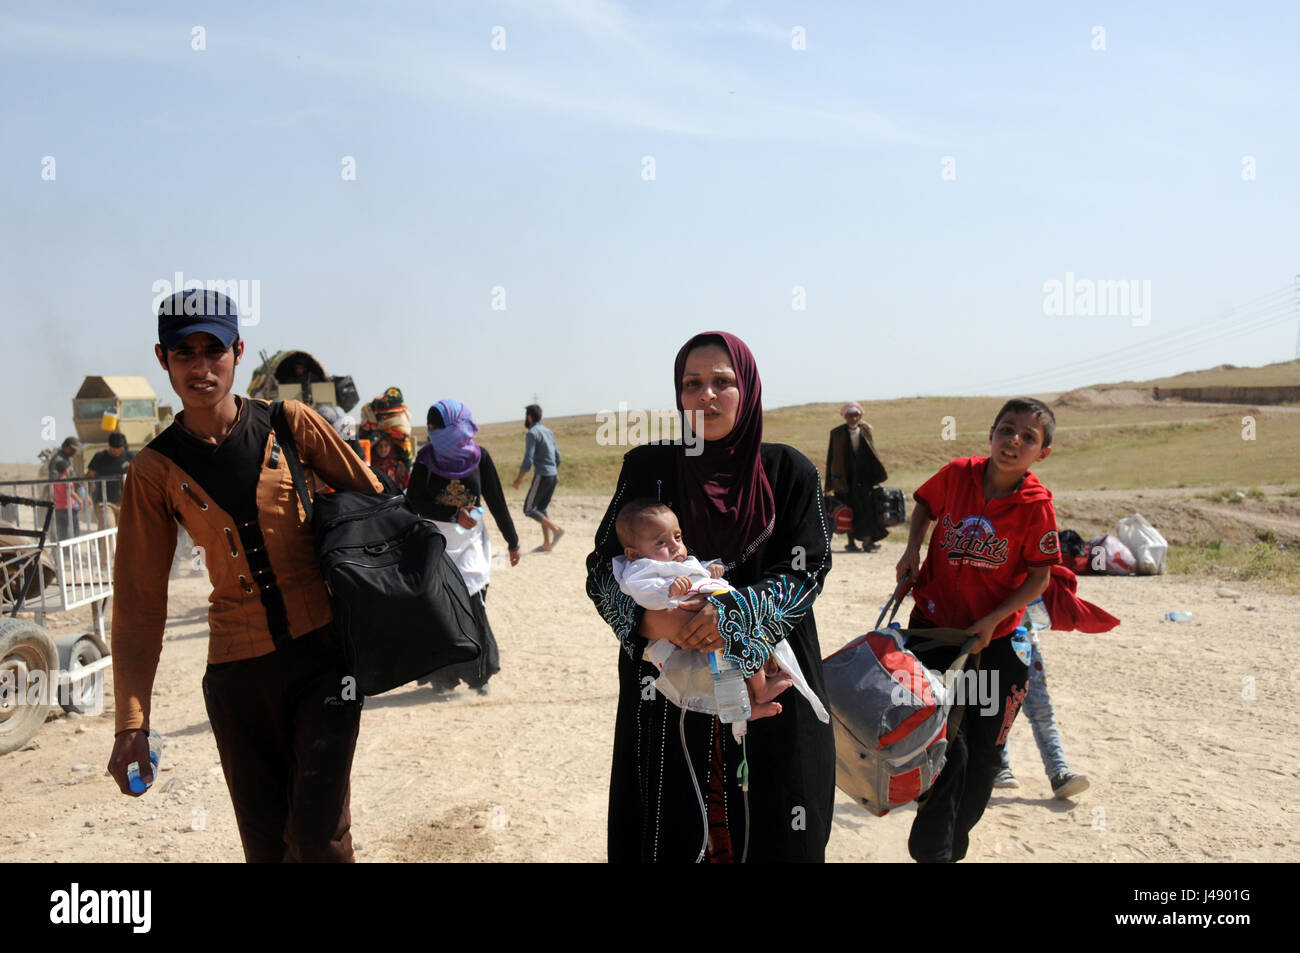 Mosul. 9th May, 2017. Iraqi civilians arrive at the northwestern suburb of Mosul after fleeing the ongoing battle - Stock Image